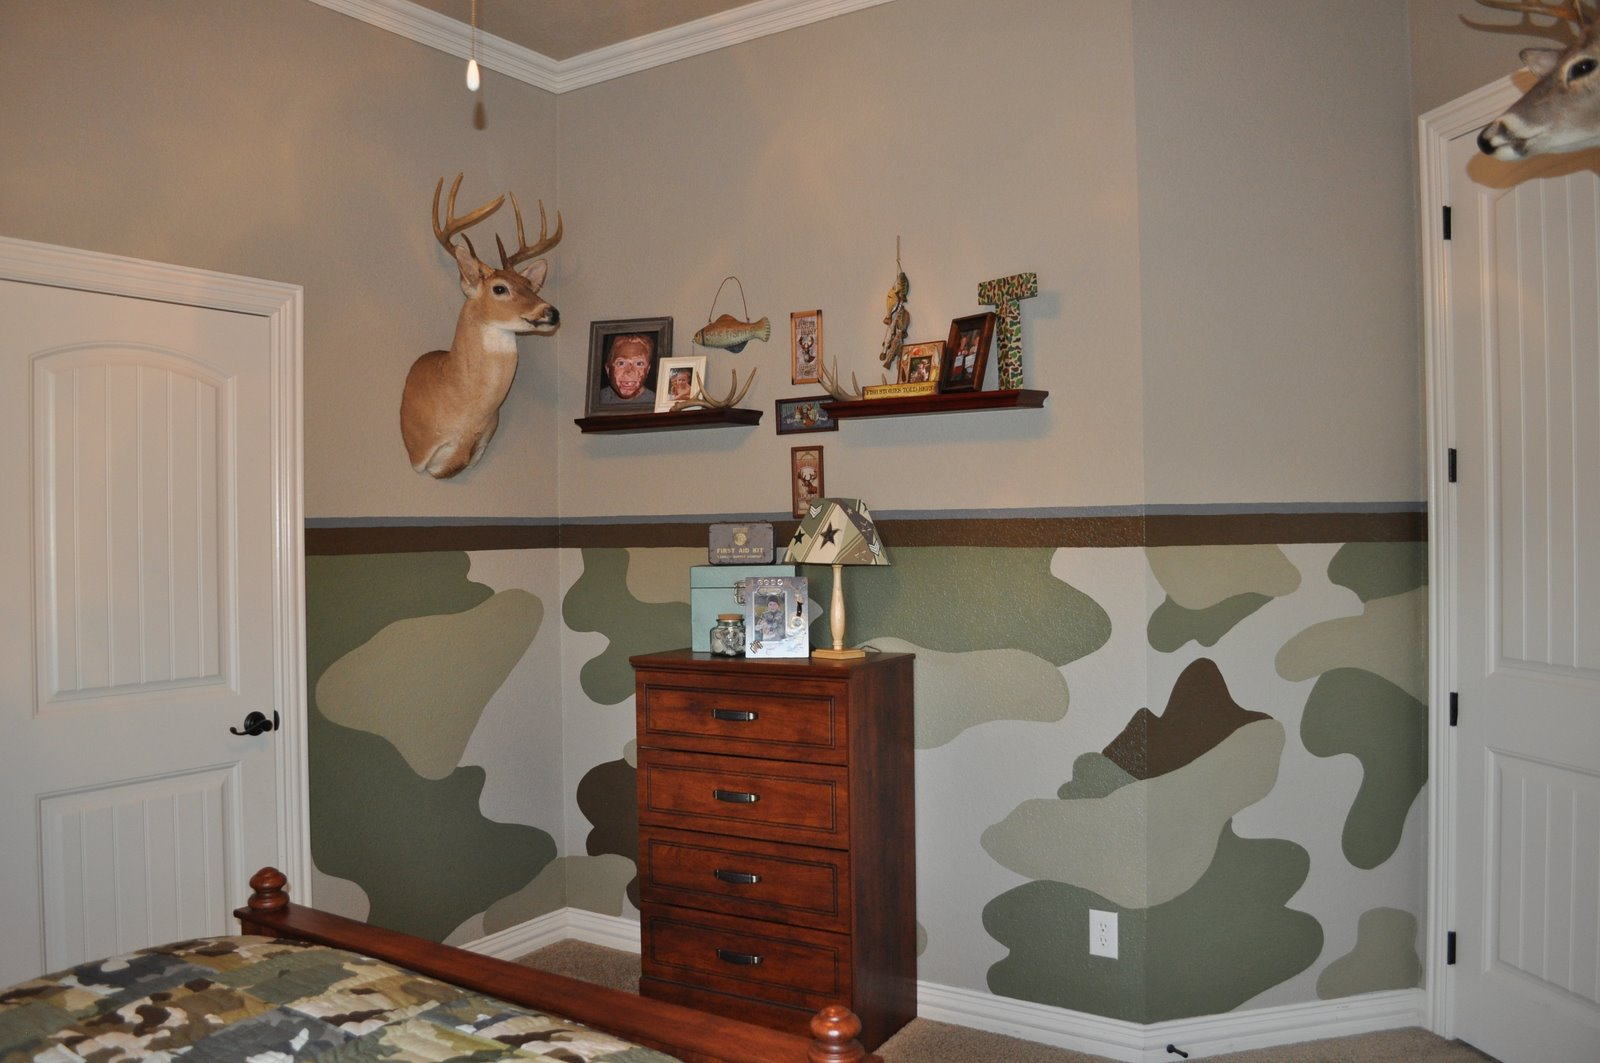 Painting and Design by Celeste: The camo room